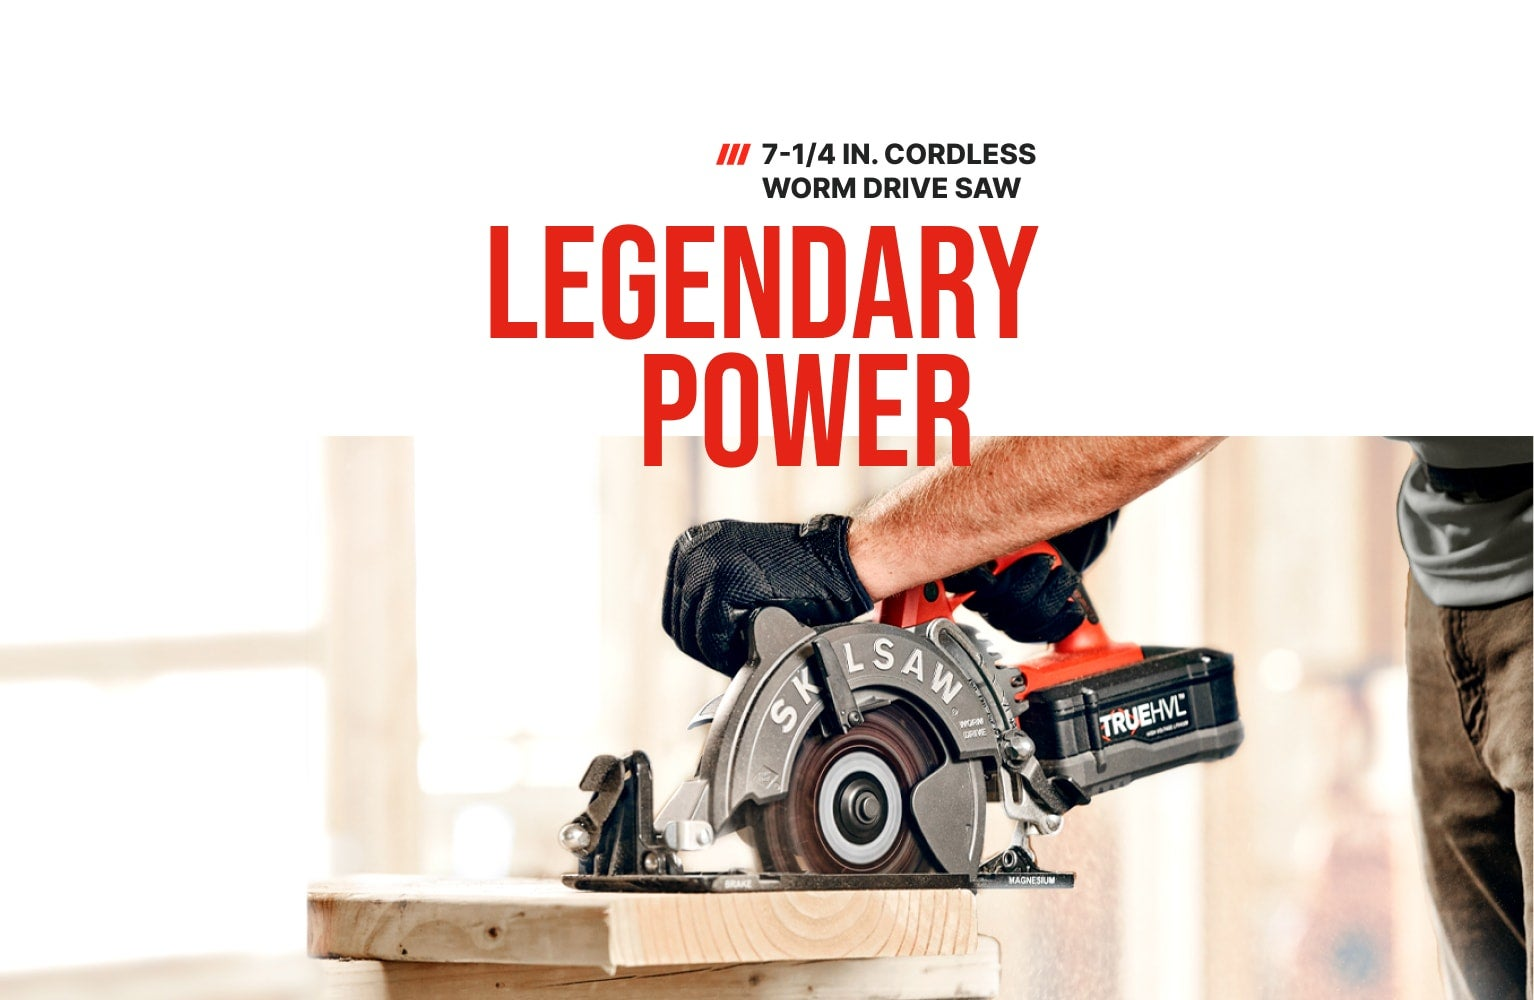 Legendary Power. Man using 7-1/4 In. Cordless Worm Drive Saw powered by TRUEHVL™